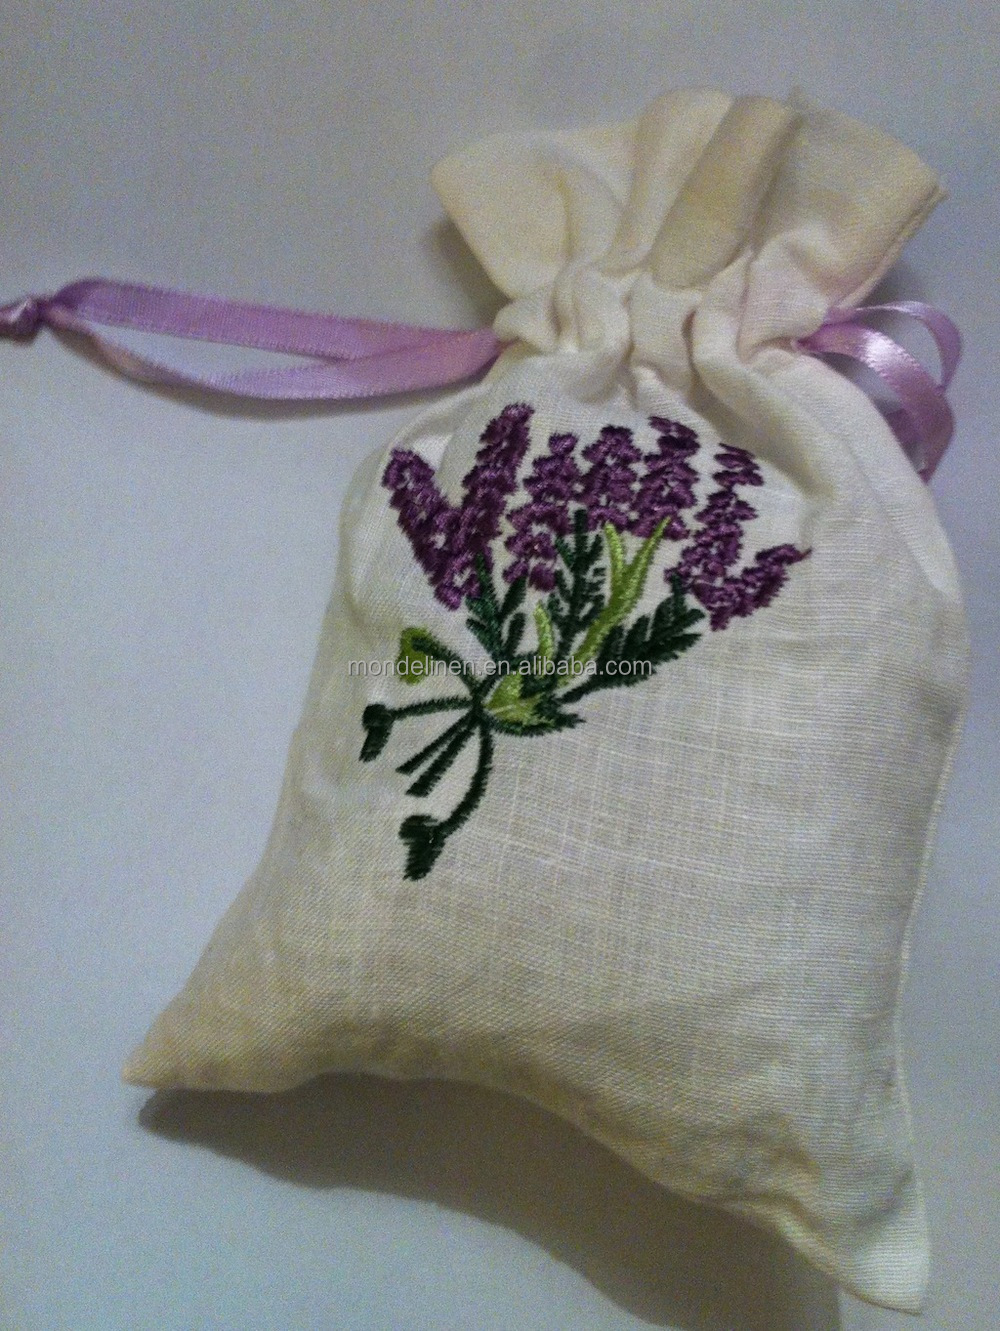 clasicall hot sale 100 linen lavender sachet bag with embroidery